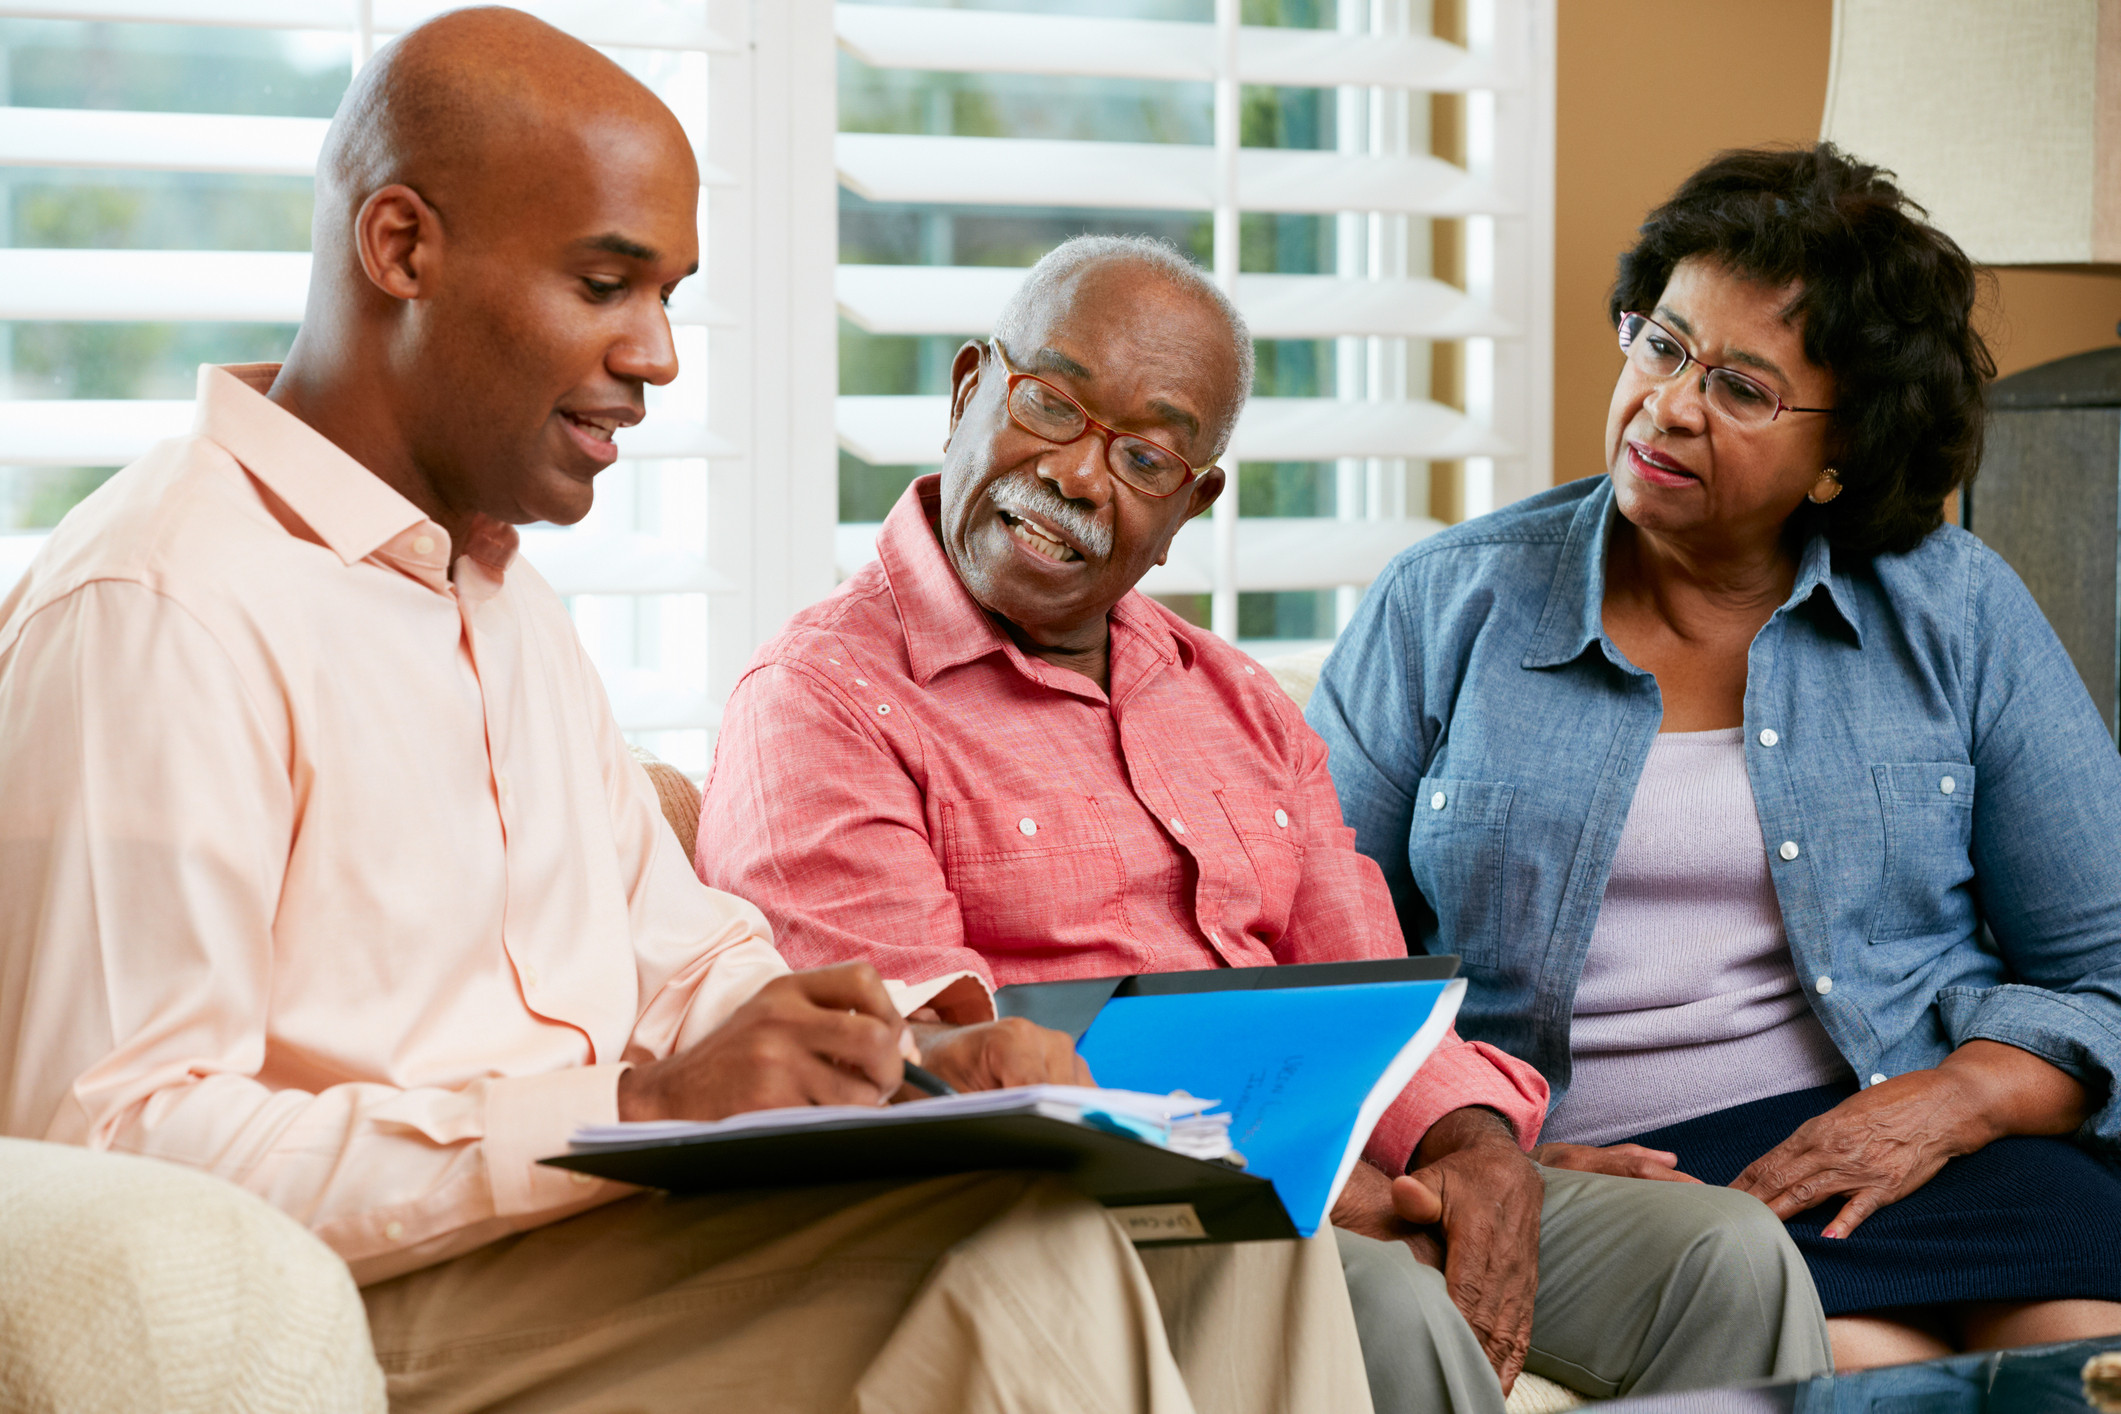 1-on-1 Advance Directives Plan Sessions